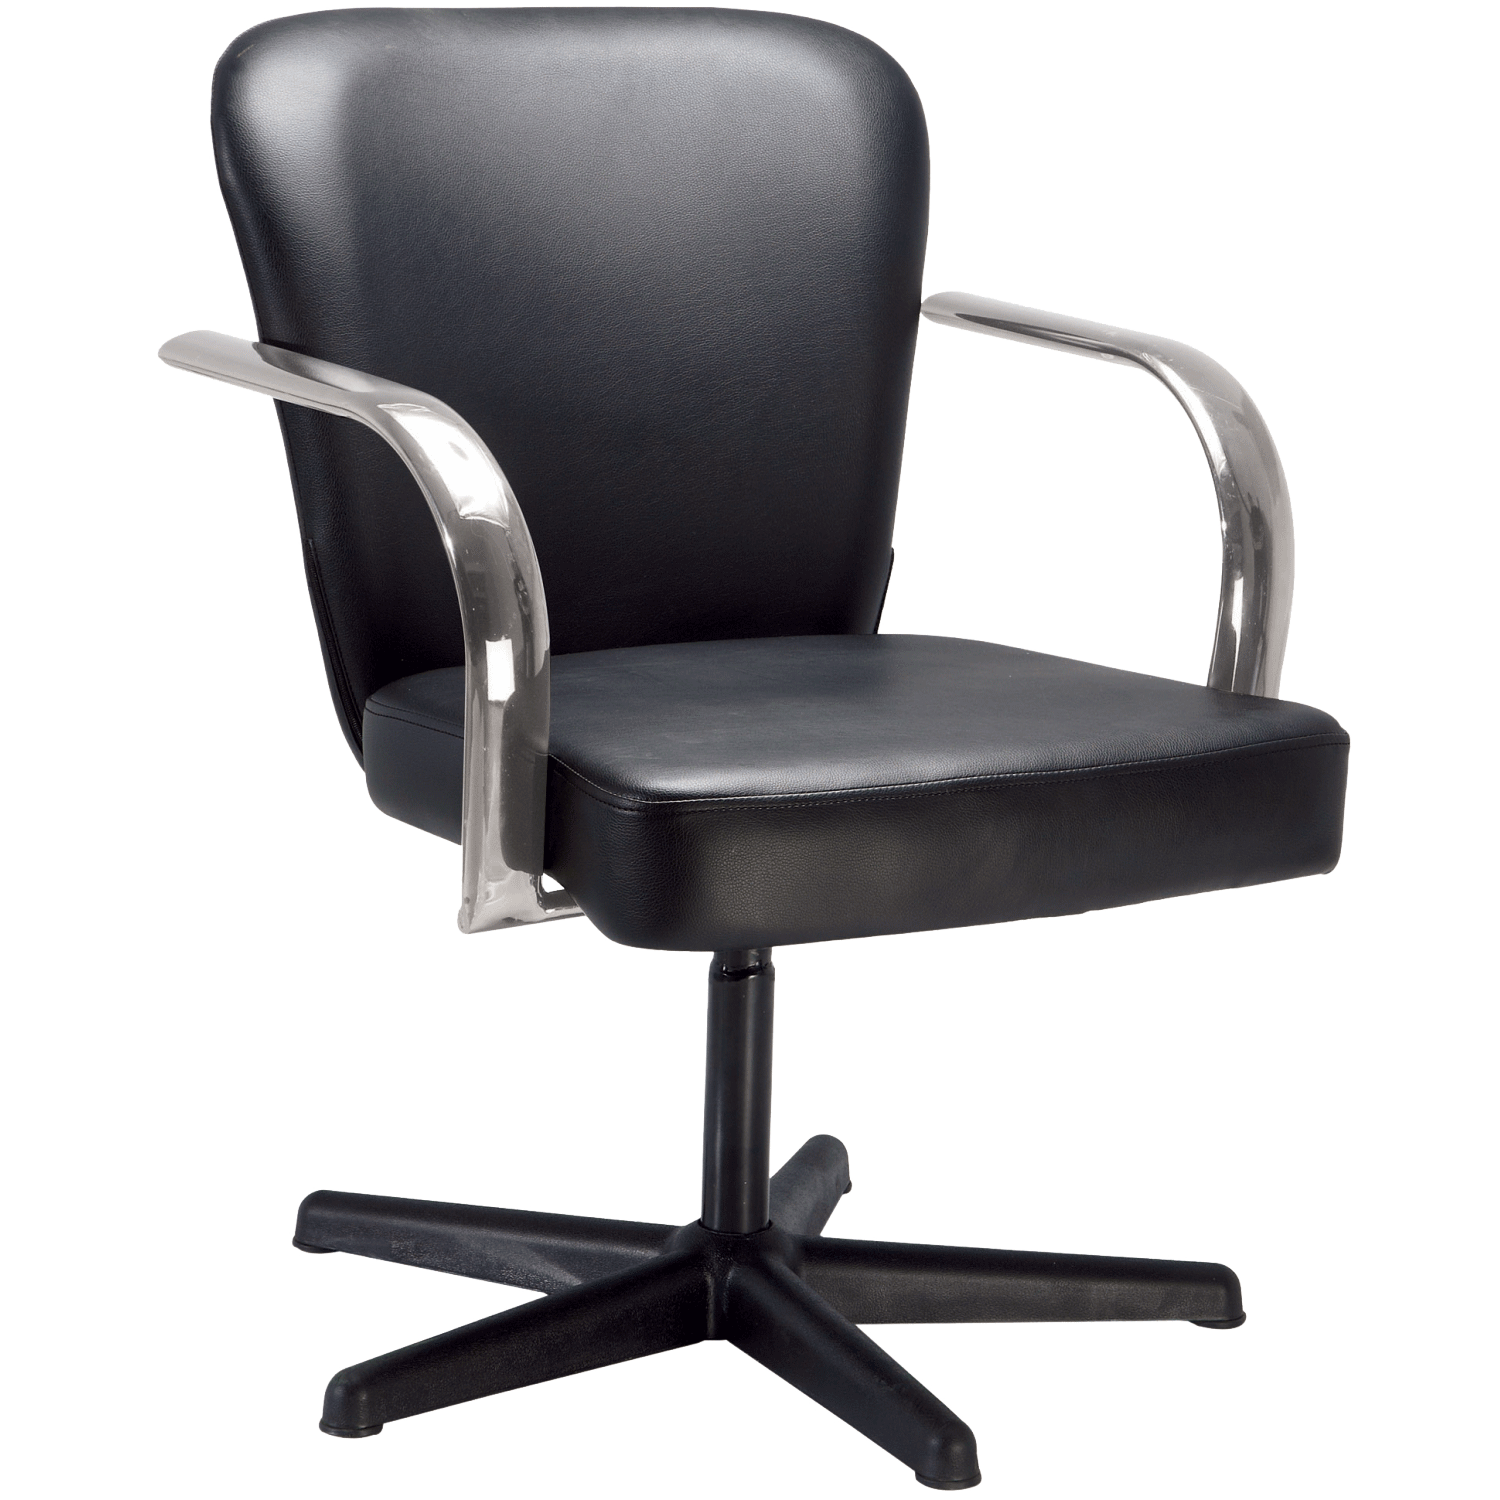 Puresana Chromium Cr24 31 Shampoo Chair at CosmoProf Equipment